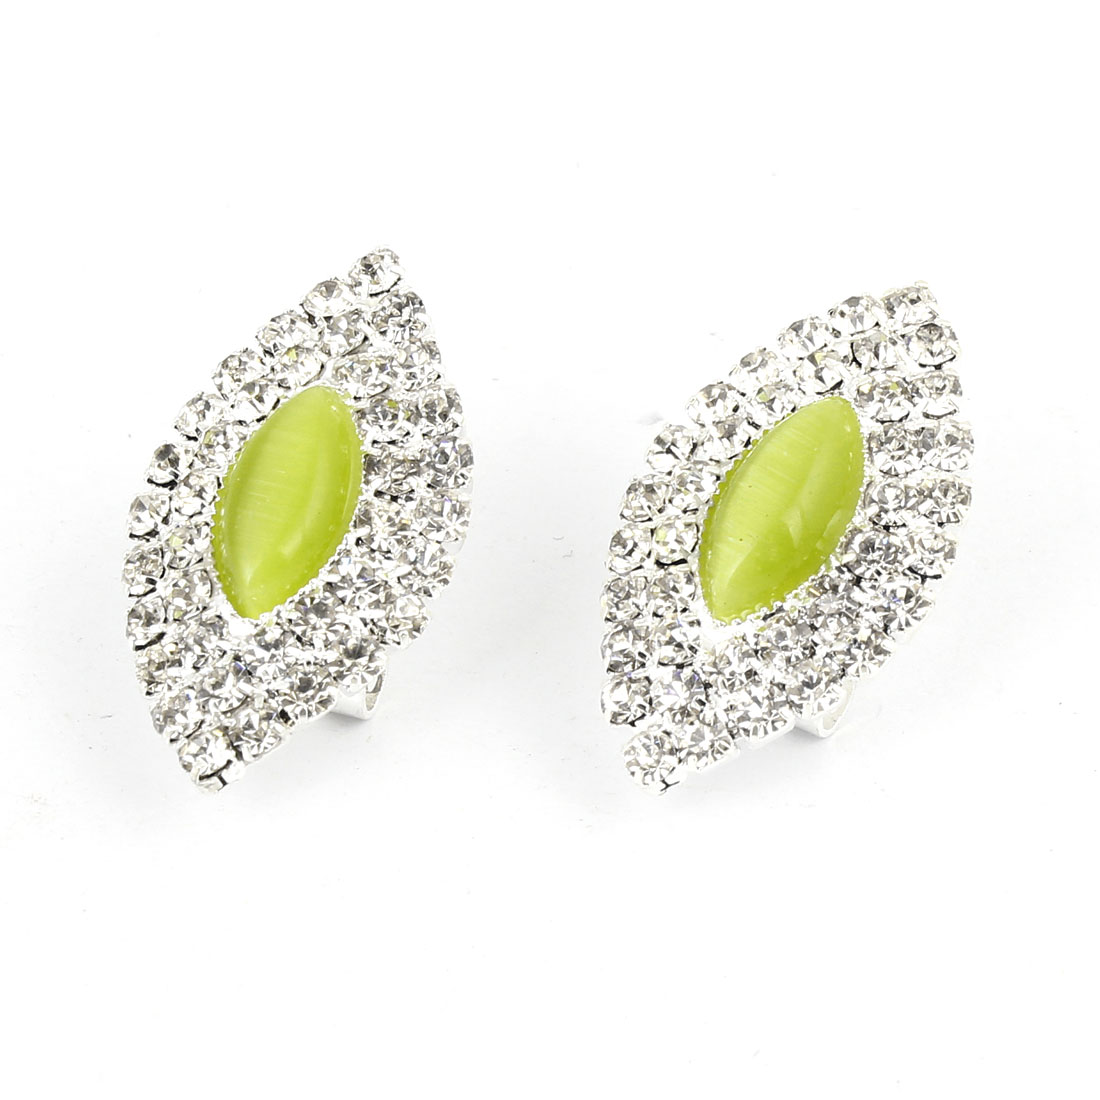 Pair Rhinestones Decor Light Green Faux Crystal French Clip Earrings for Women